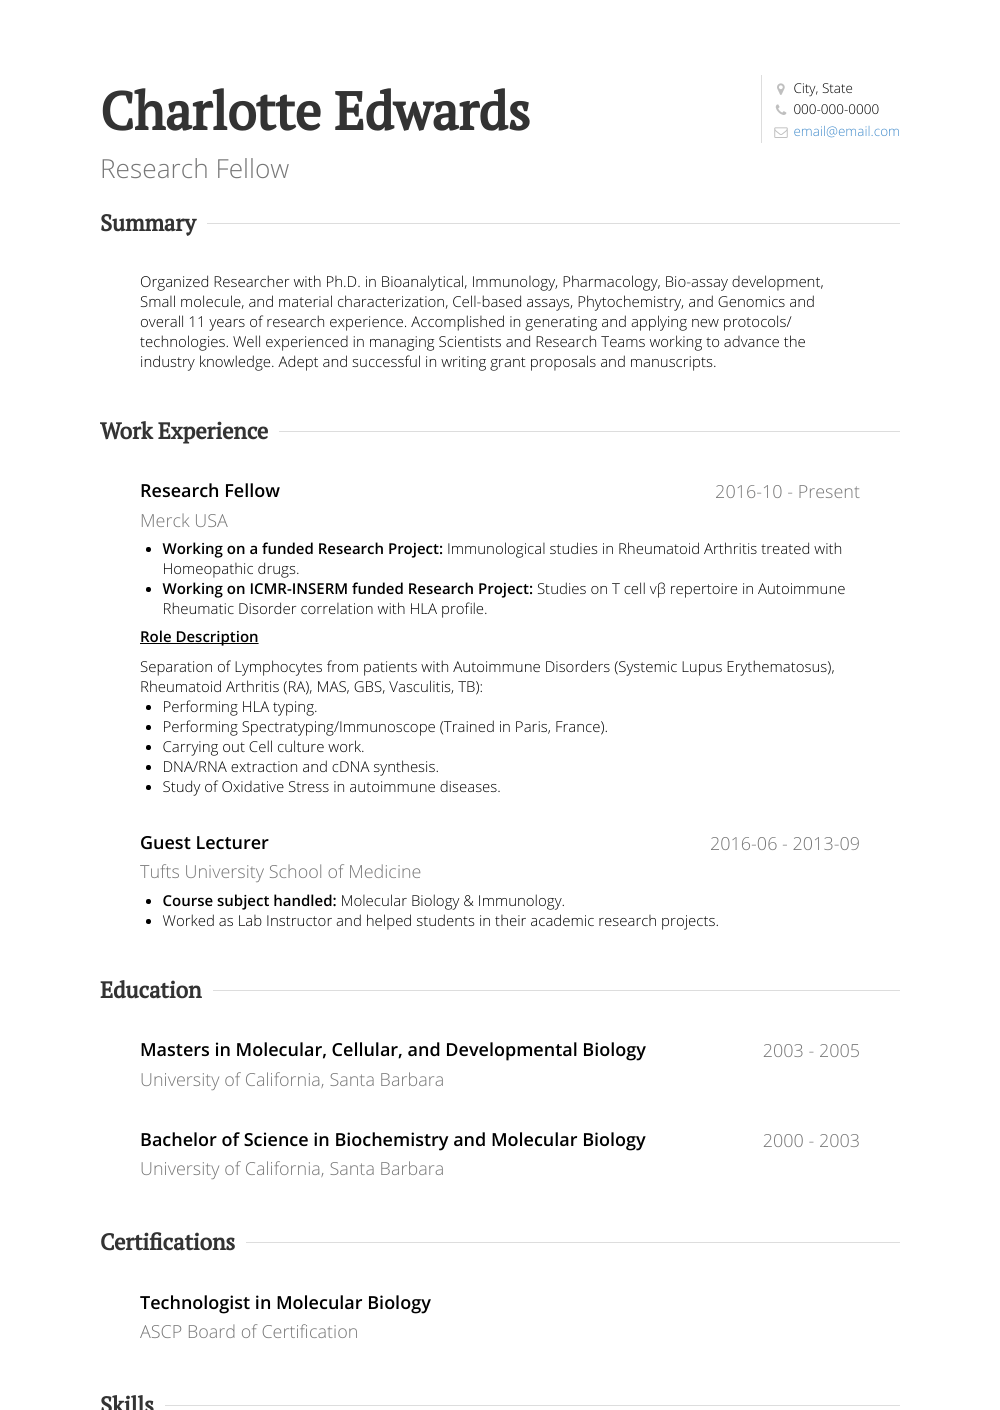 research Fellow Resume Sample and Template